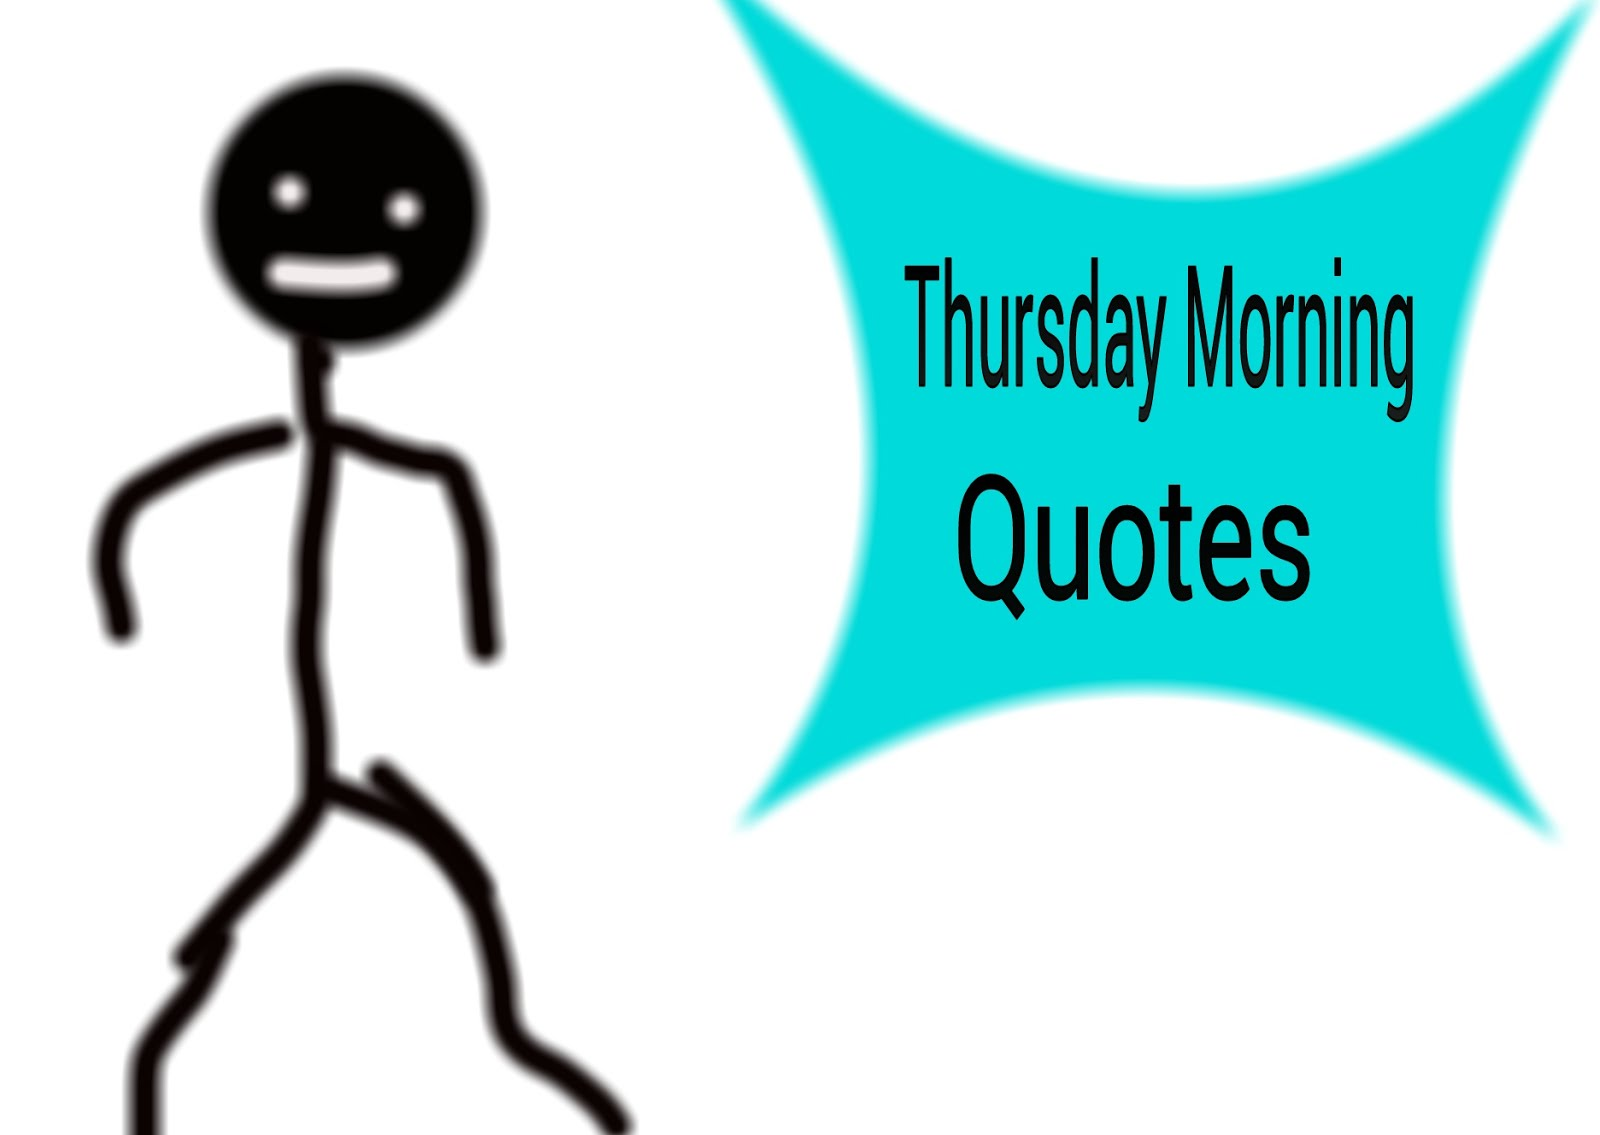 Thursday Morning Quotes